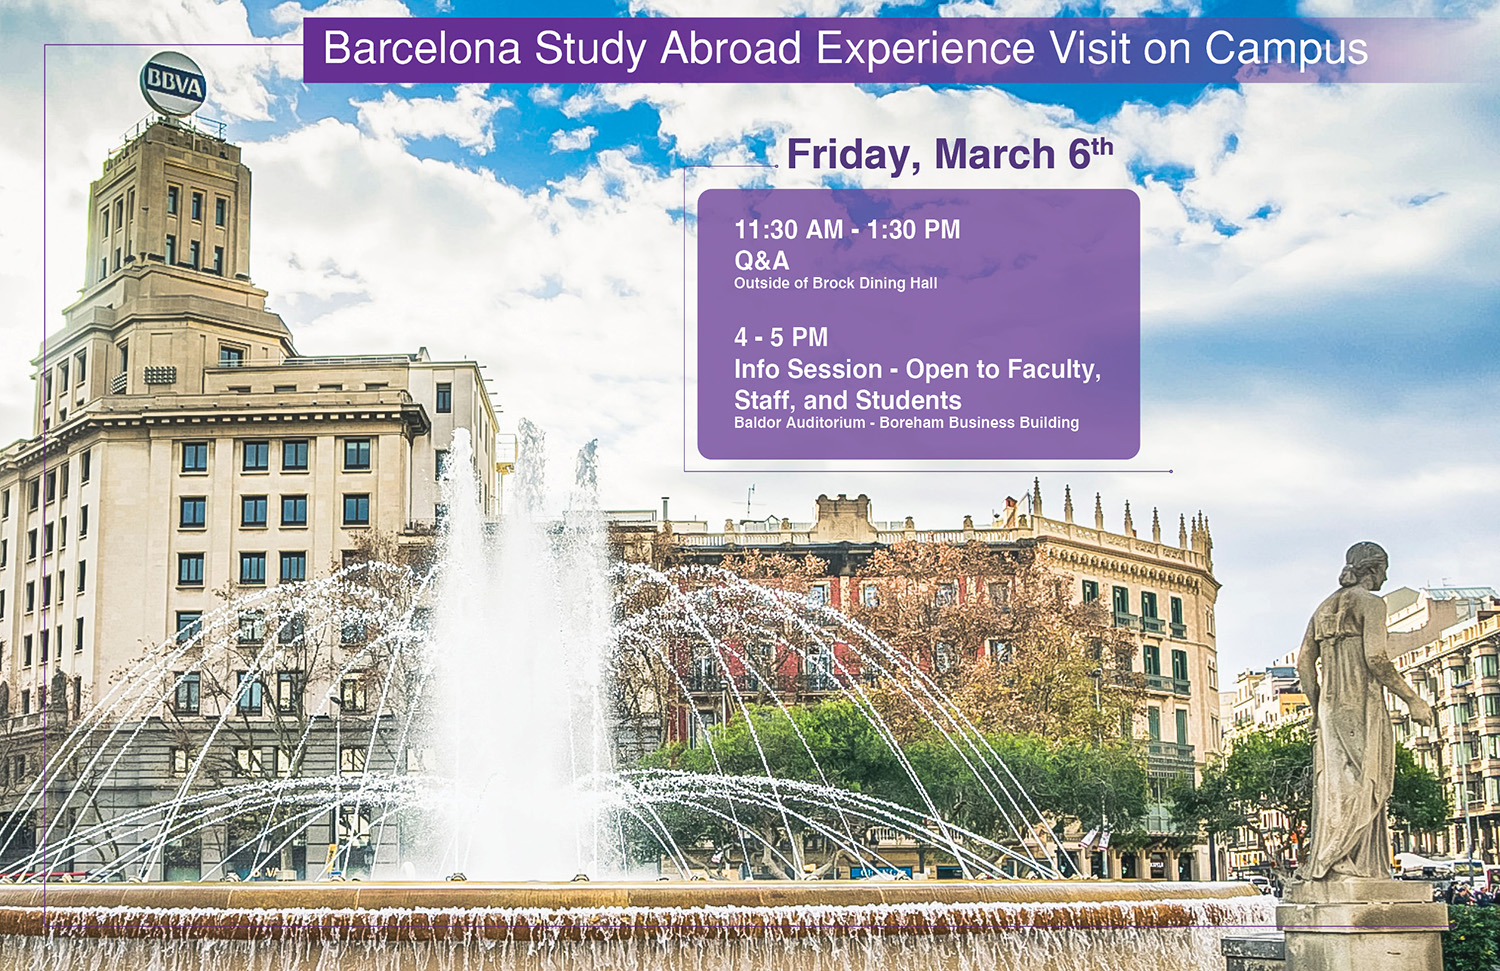 Barcelona Study Abroad Experience Info Session